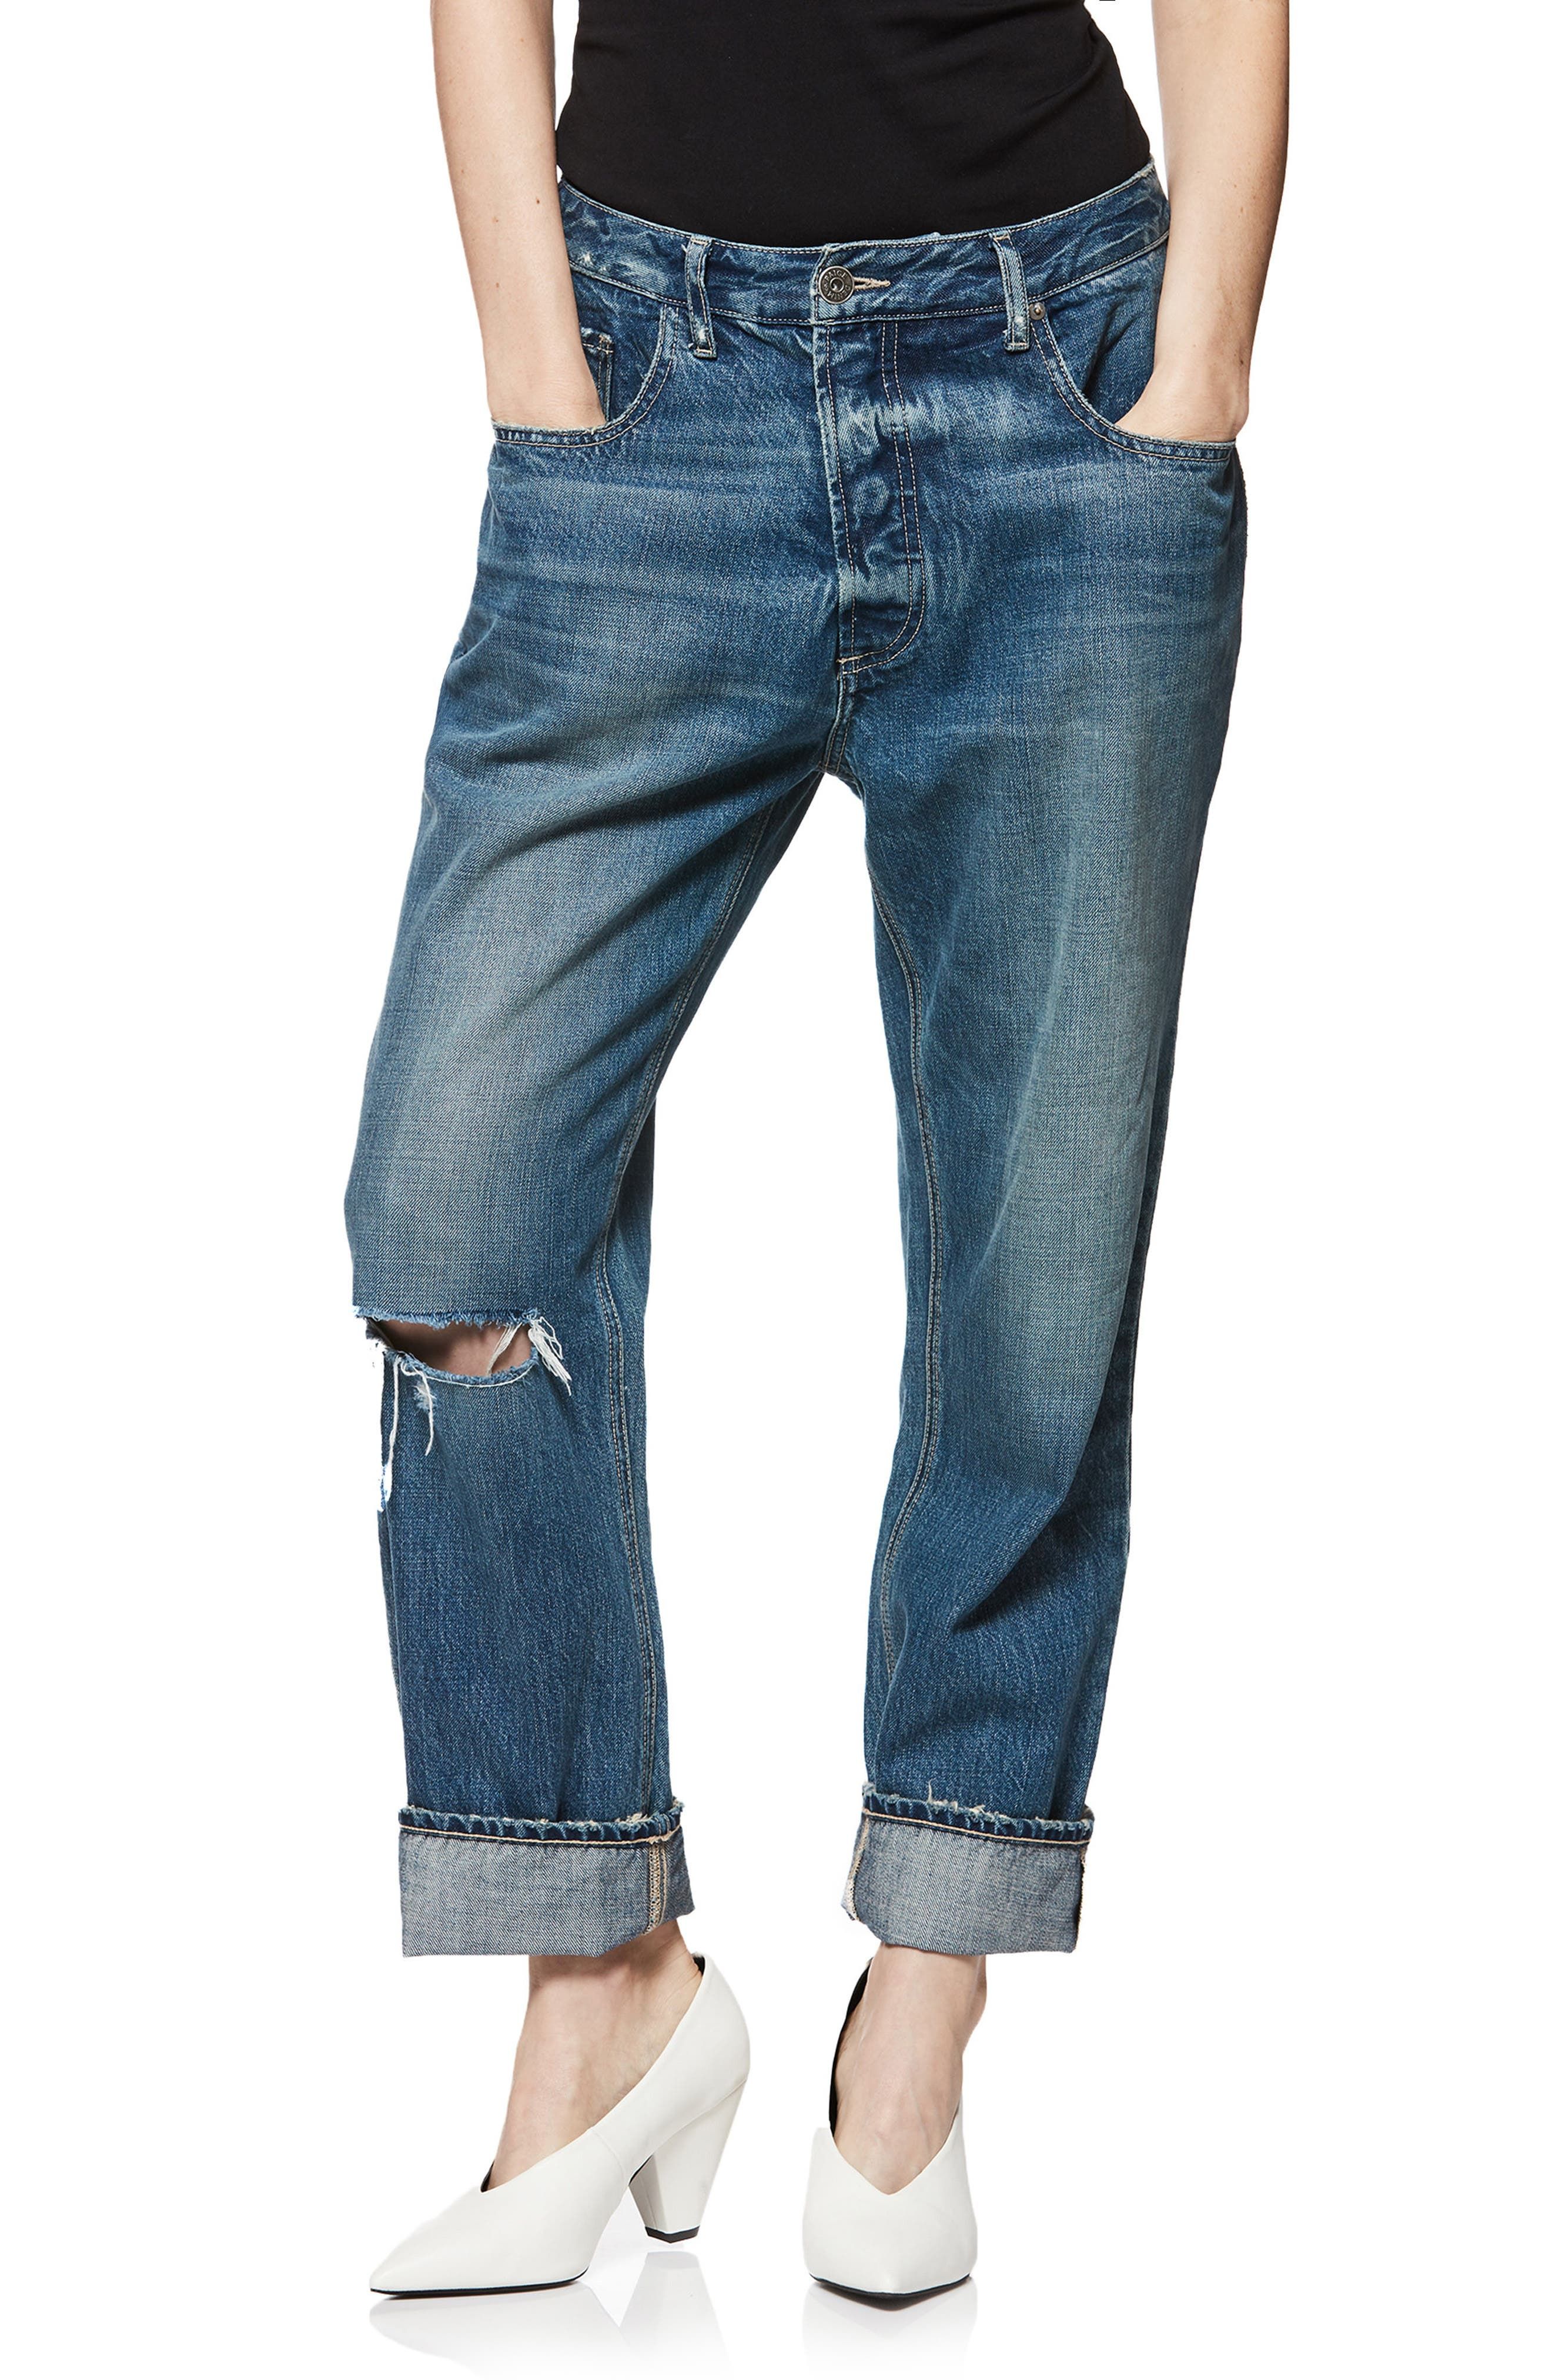 Mikey Mike Ripped Boyfriend Jeans,                             Main thumbnail 1, color,                             400